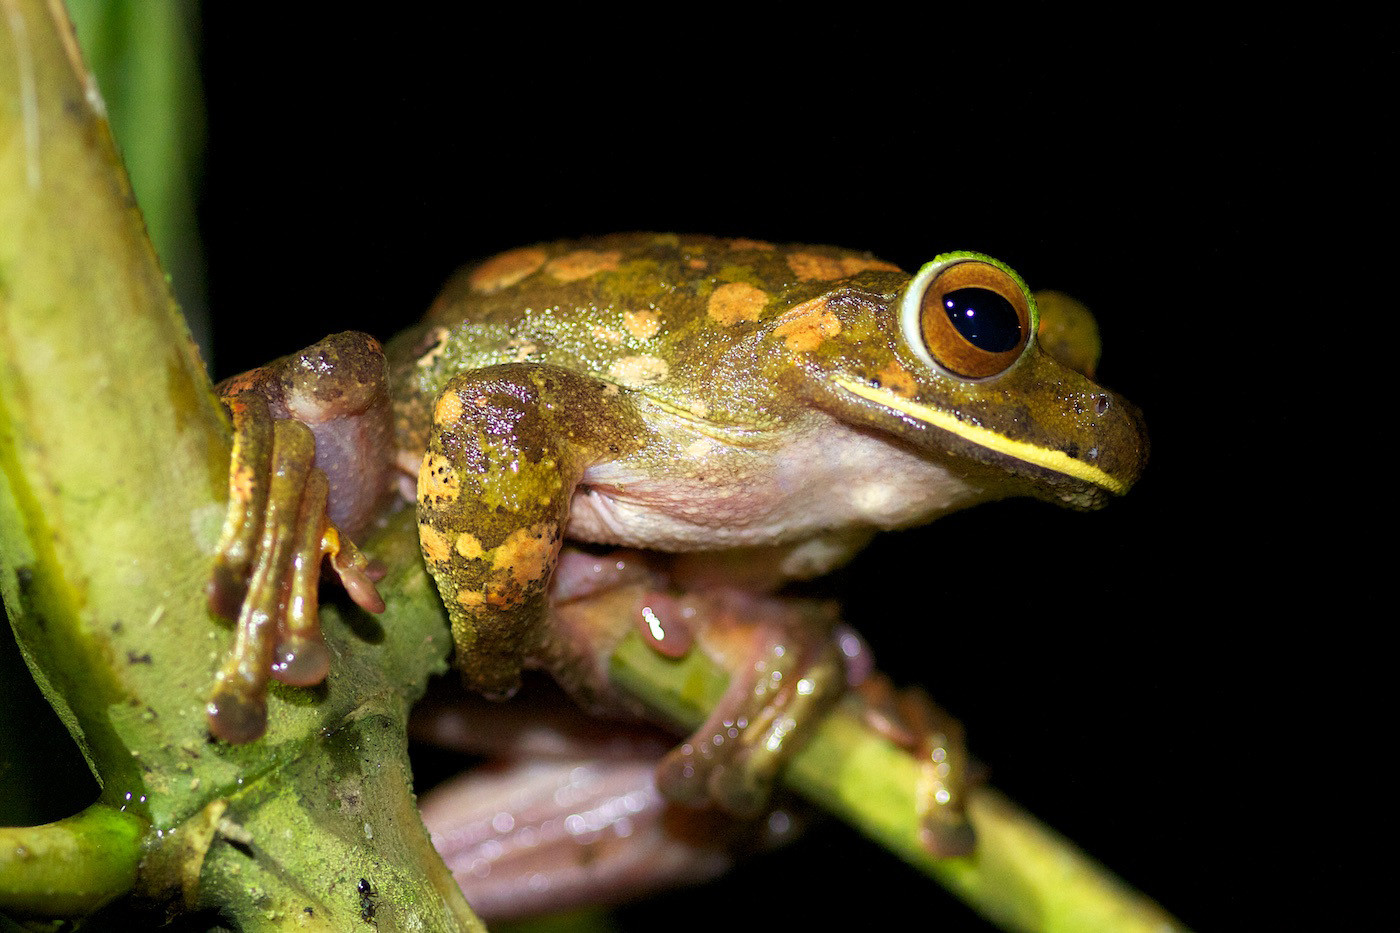 17 WHITE LIPPED TREE FROG by Sue Pennicott